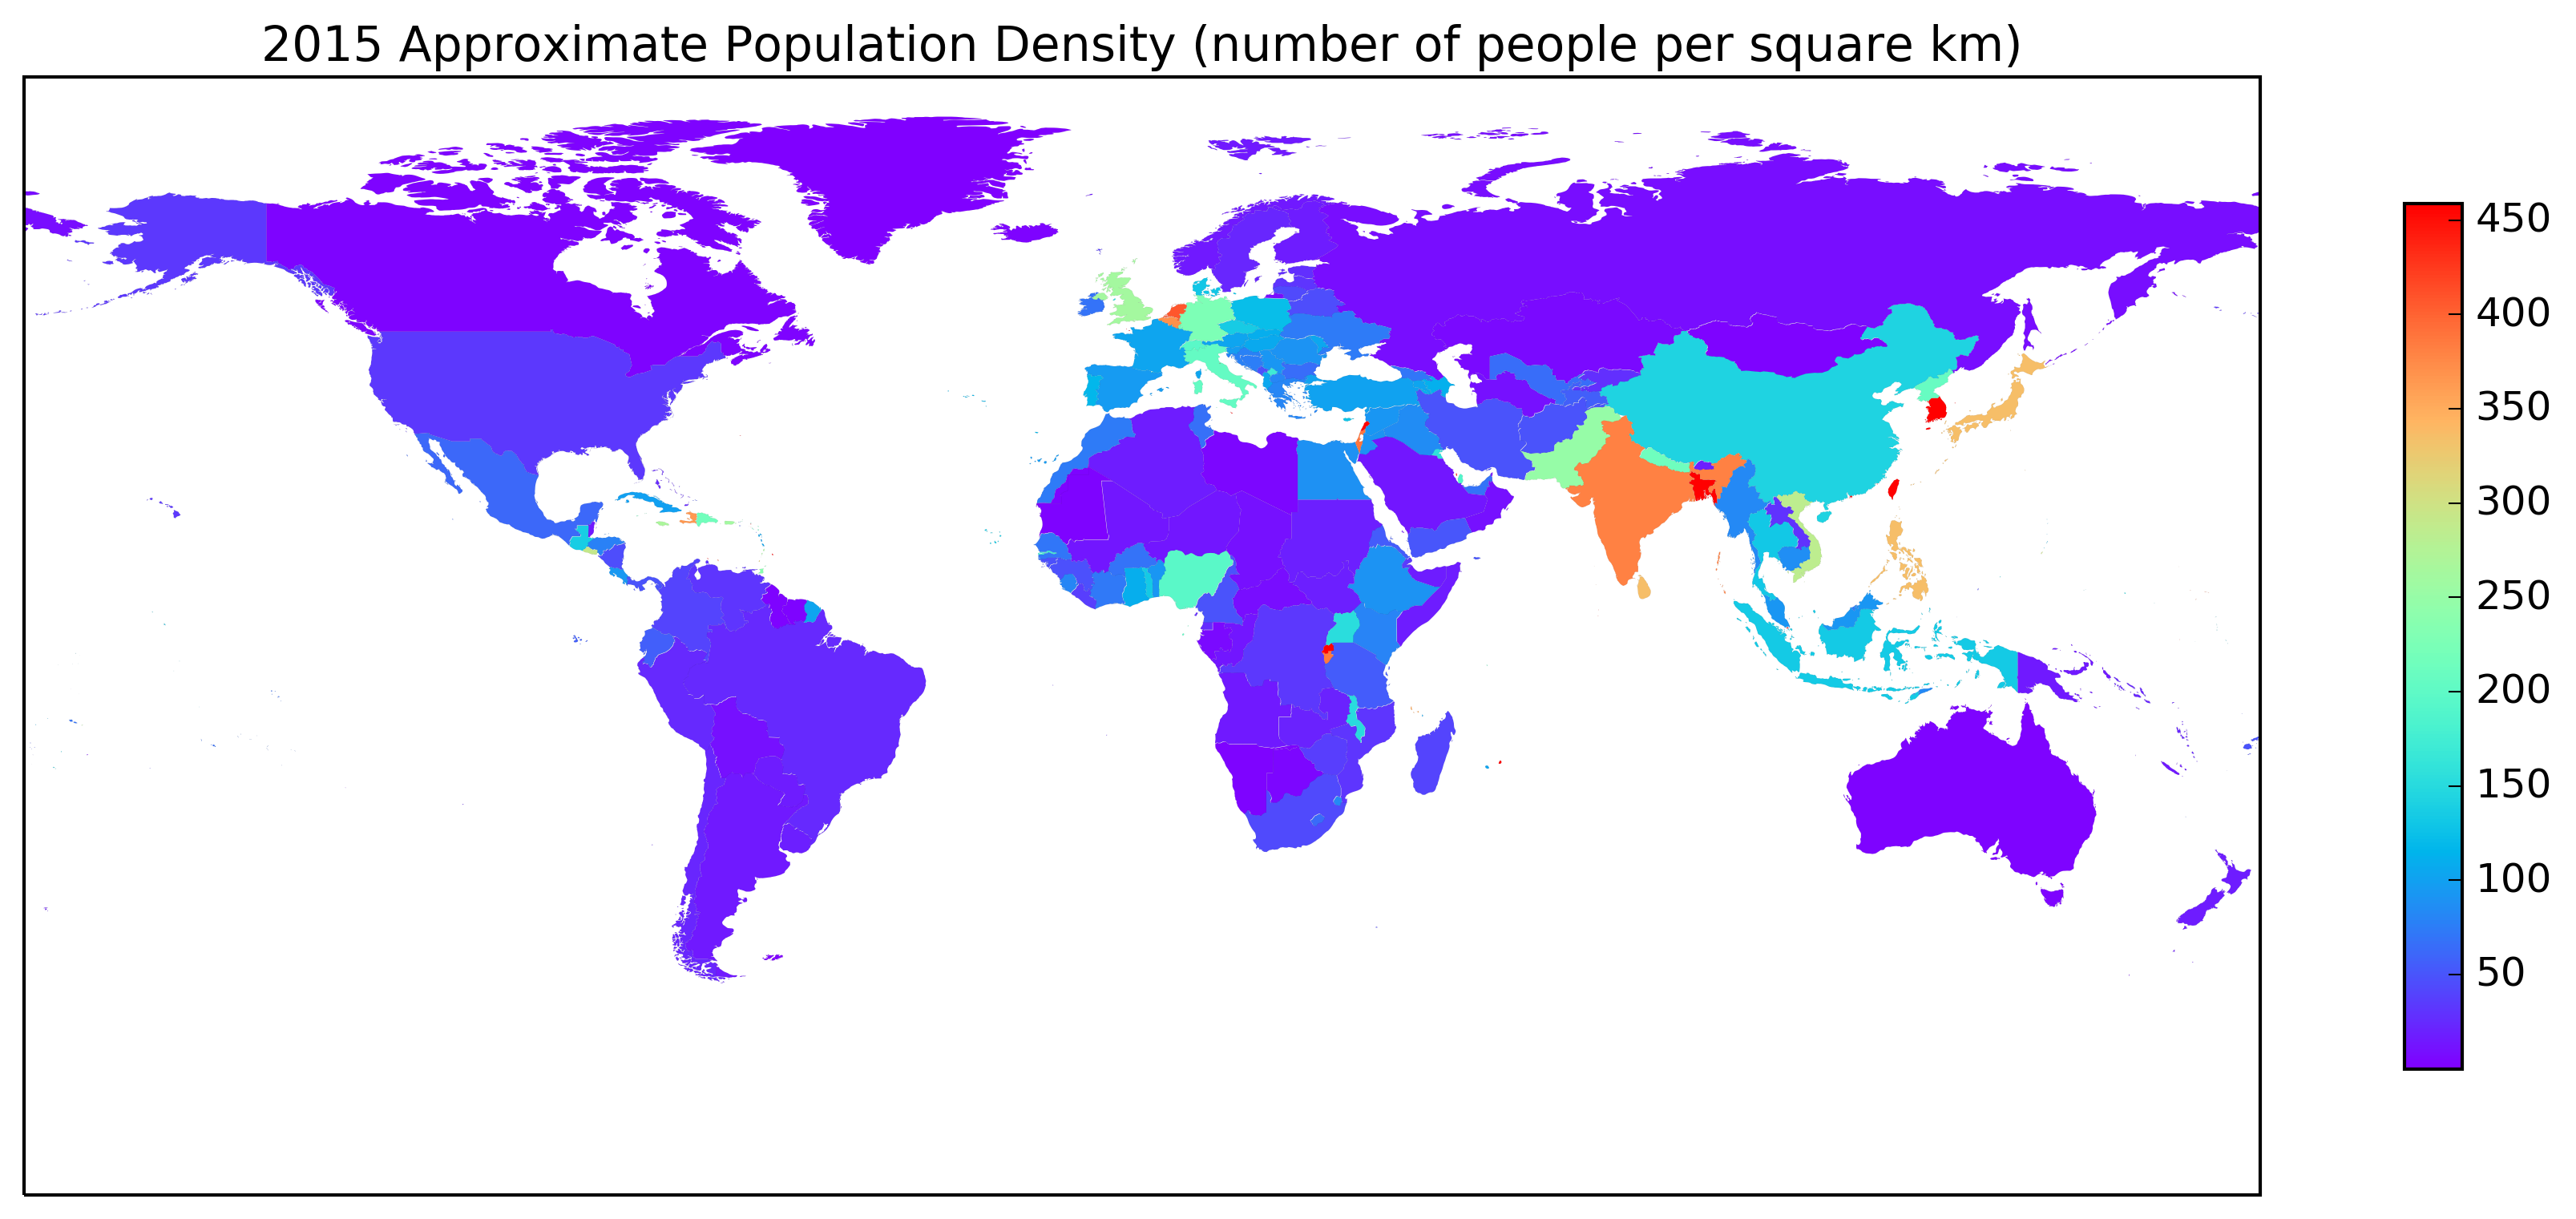 2015 Approximate Population Density Plot